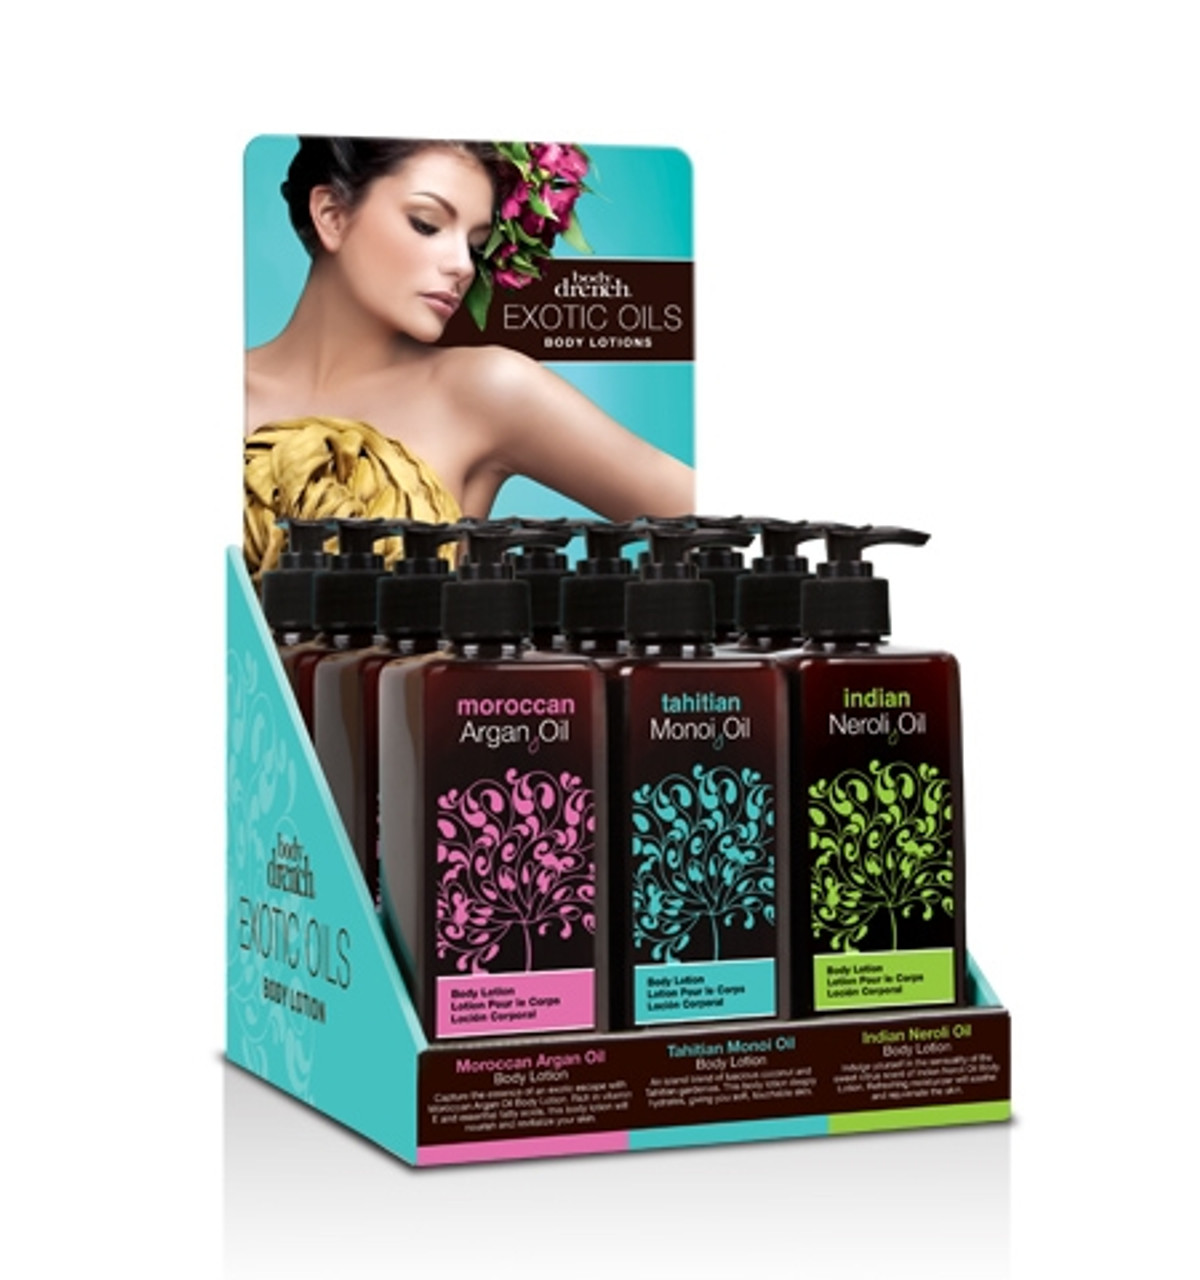 Body Drench Exotic Oil Lotions